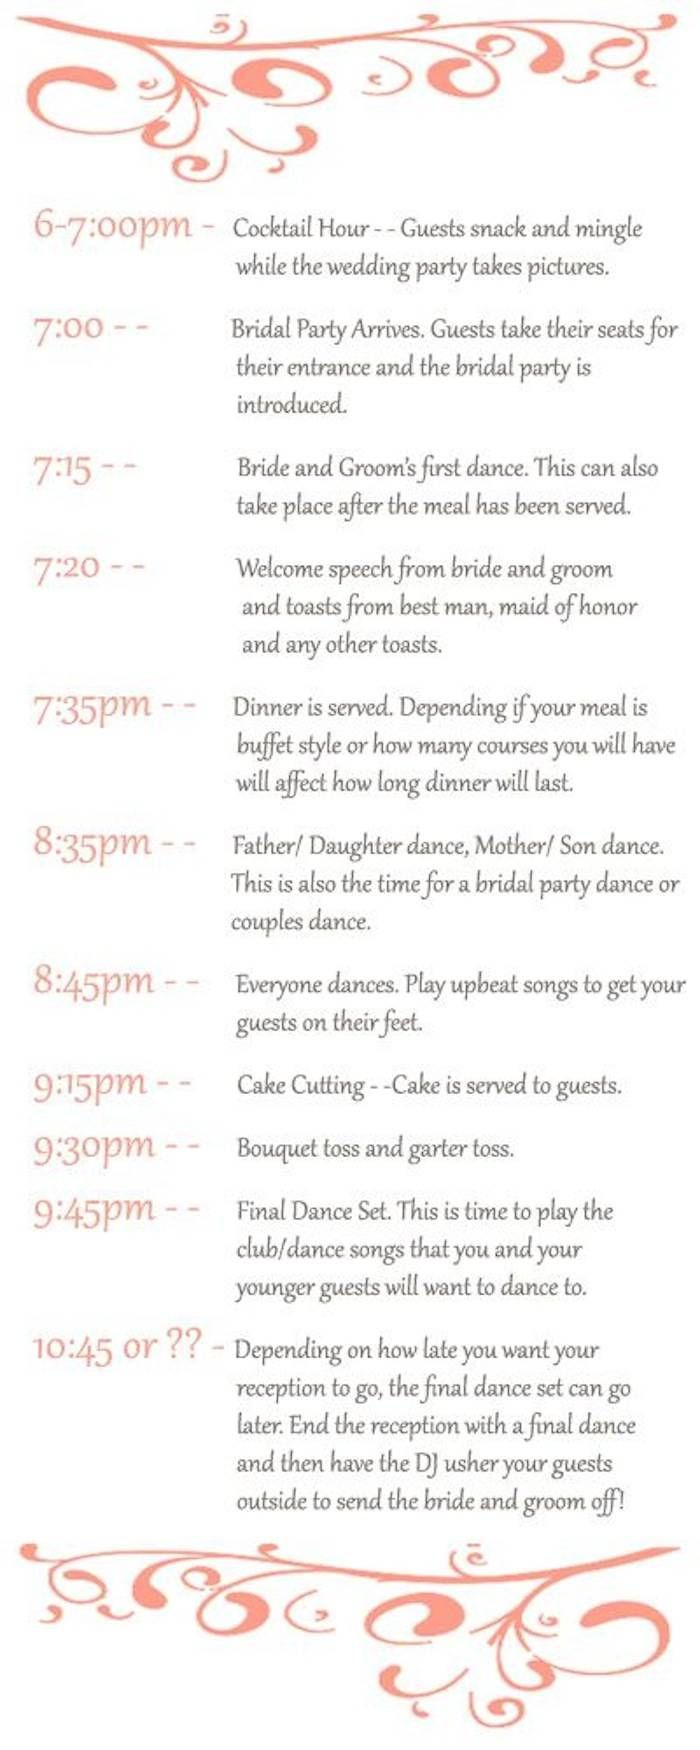 Wedding Reception Timeline Planning Guide Wedding Stuff